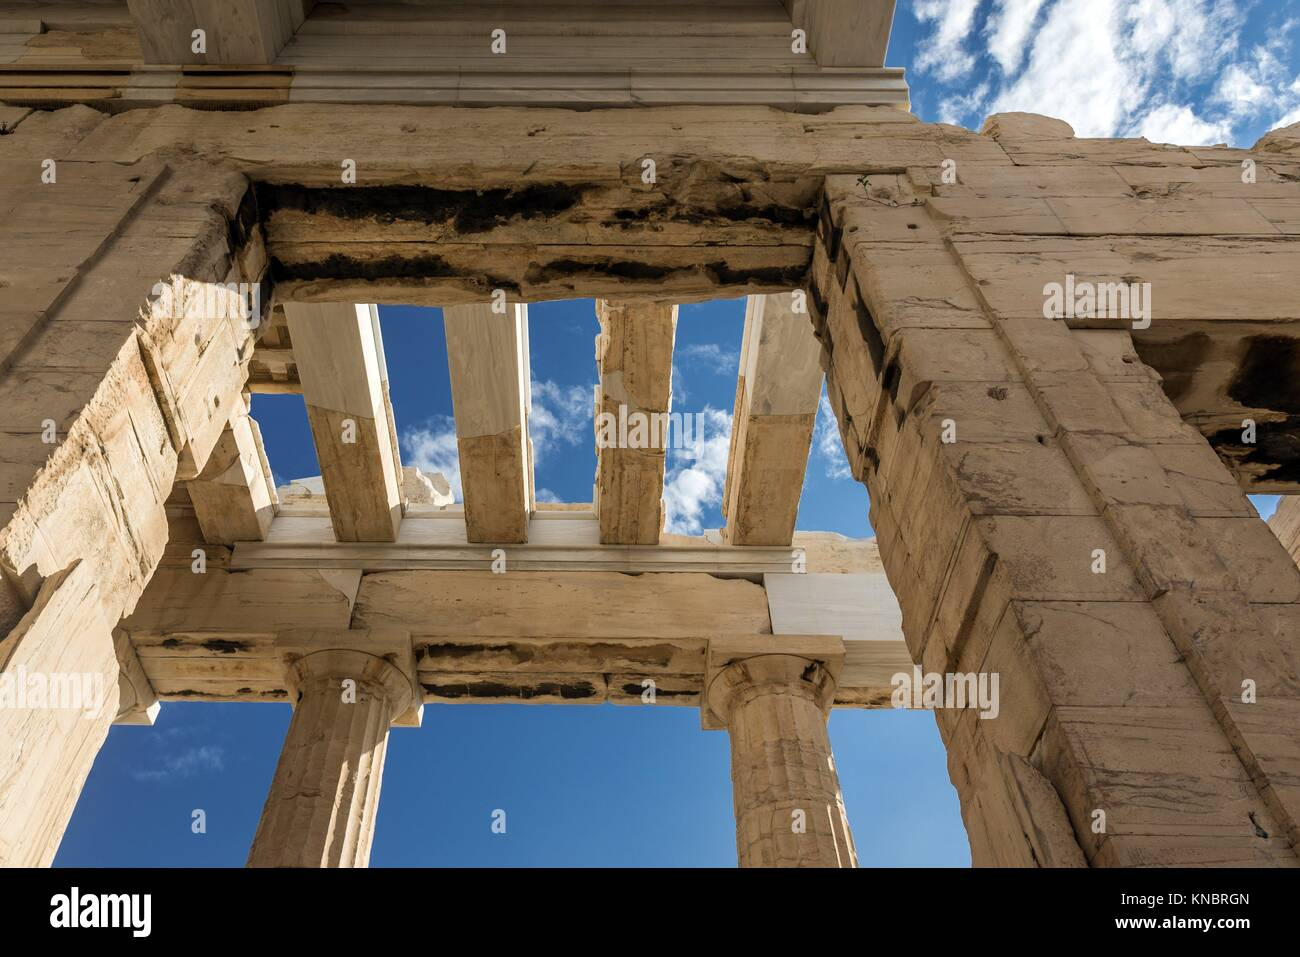 Monumental gateway called Propylaea, entrance to the top of Acropolis of Athens city, Greece. Stock Photo